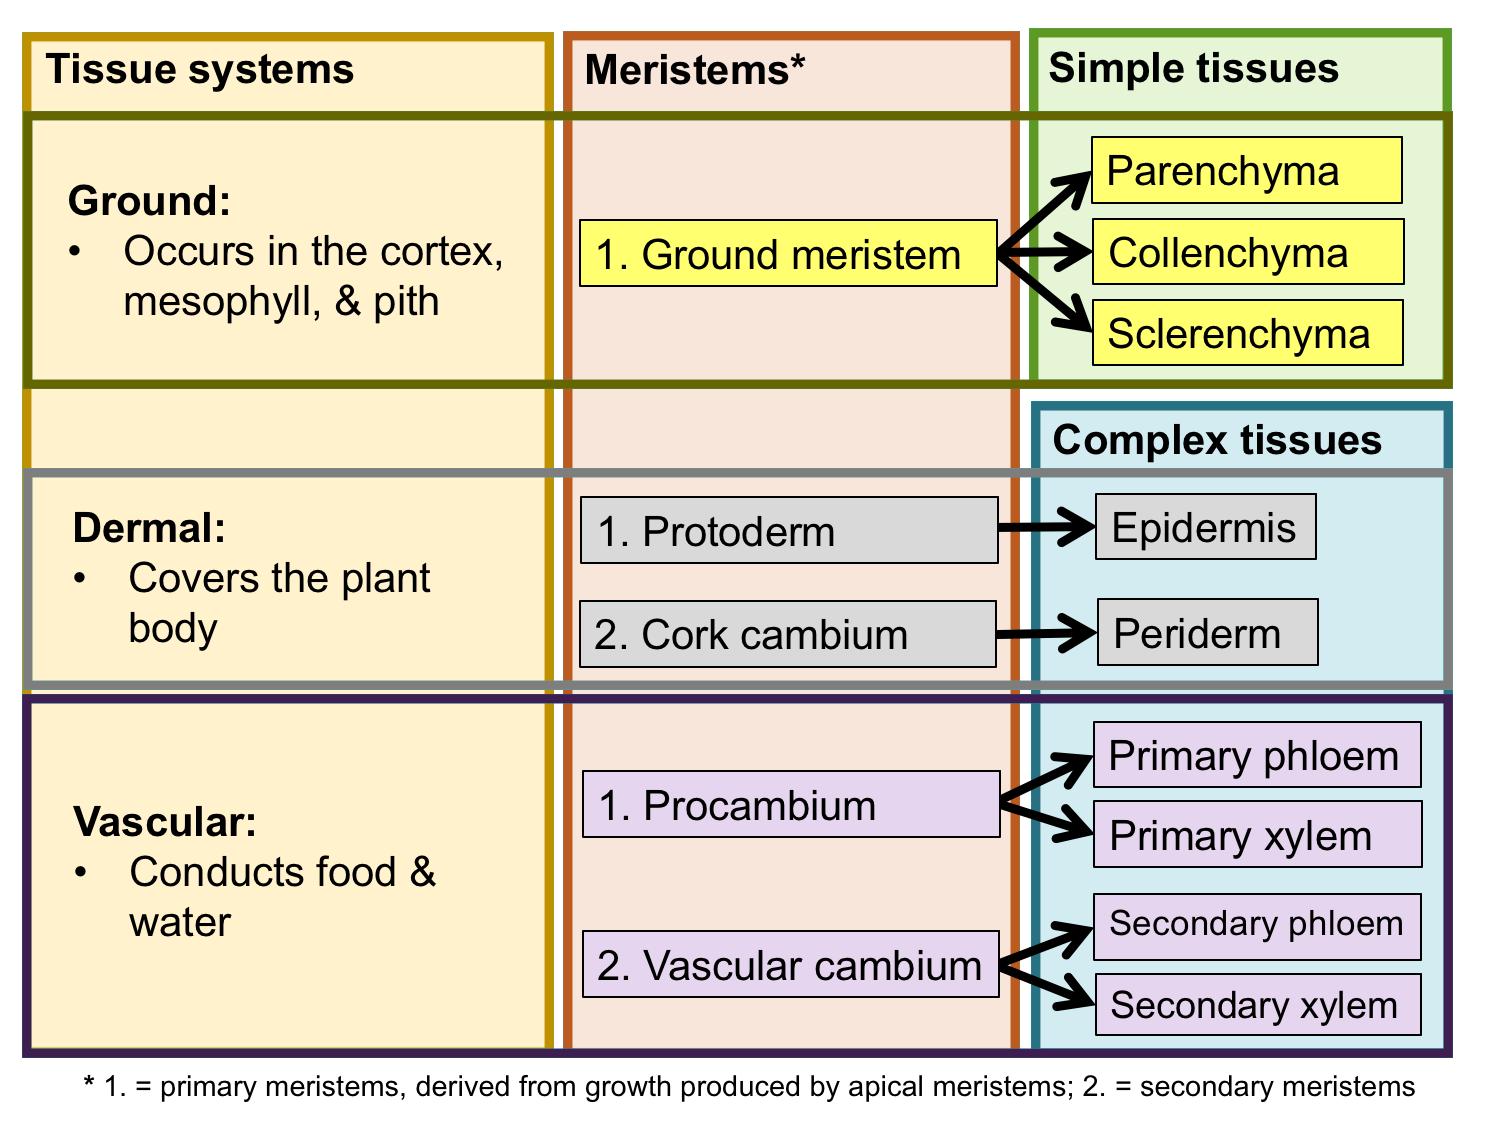 Chart summarizing the relationship between tissue systems, meristems, and tissues.